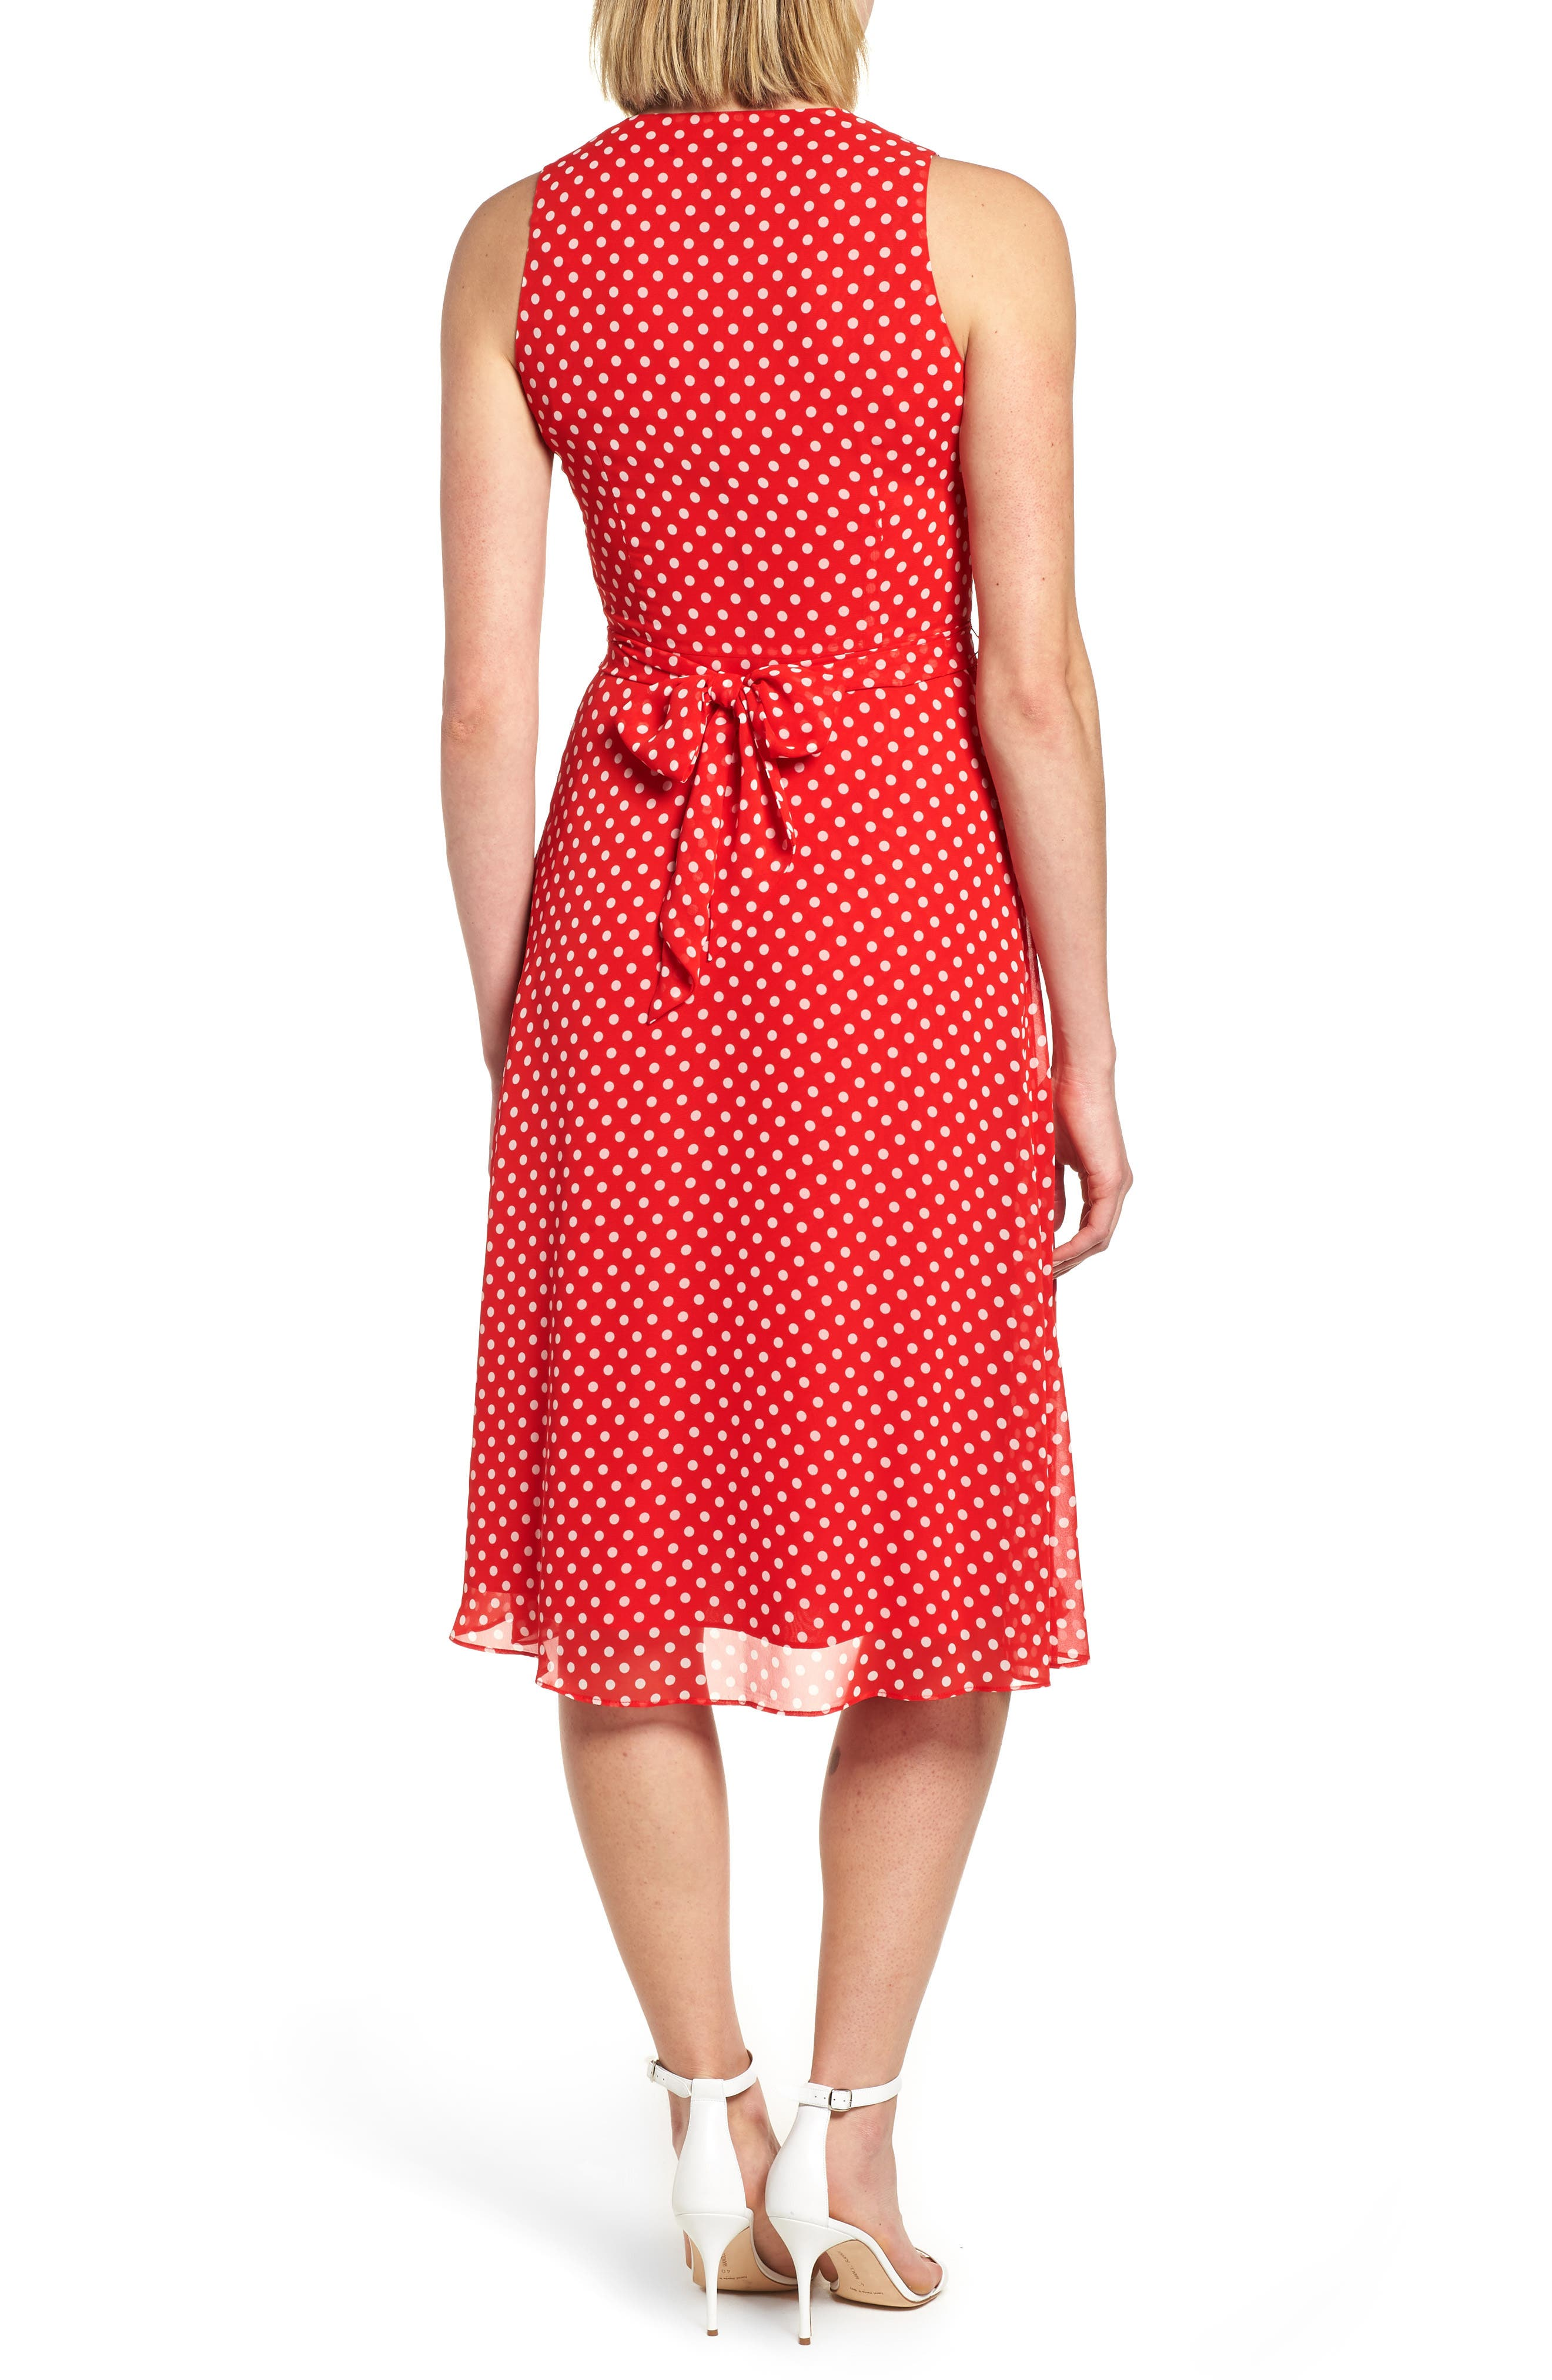 Polka Dot A-Line Dress,                             Alternate thumbnail 2, color,                             600